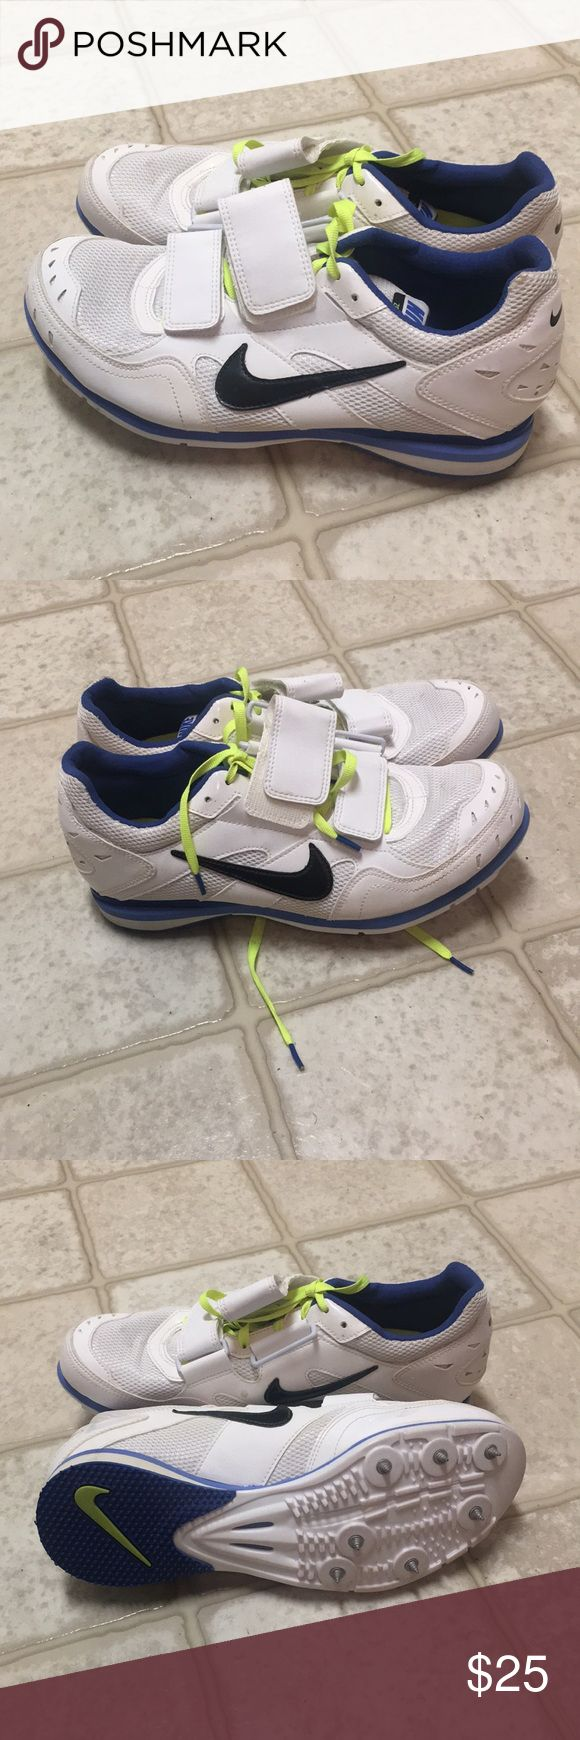 Nike triple jump spikes Used one season Men's size 7 Women's size 8.5 Nike spike bag included Nike Shoes Athletic Shoes